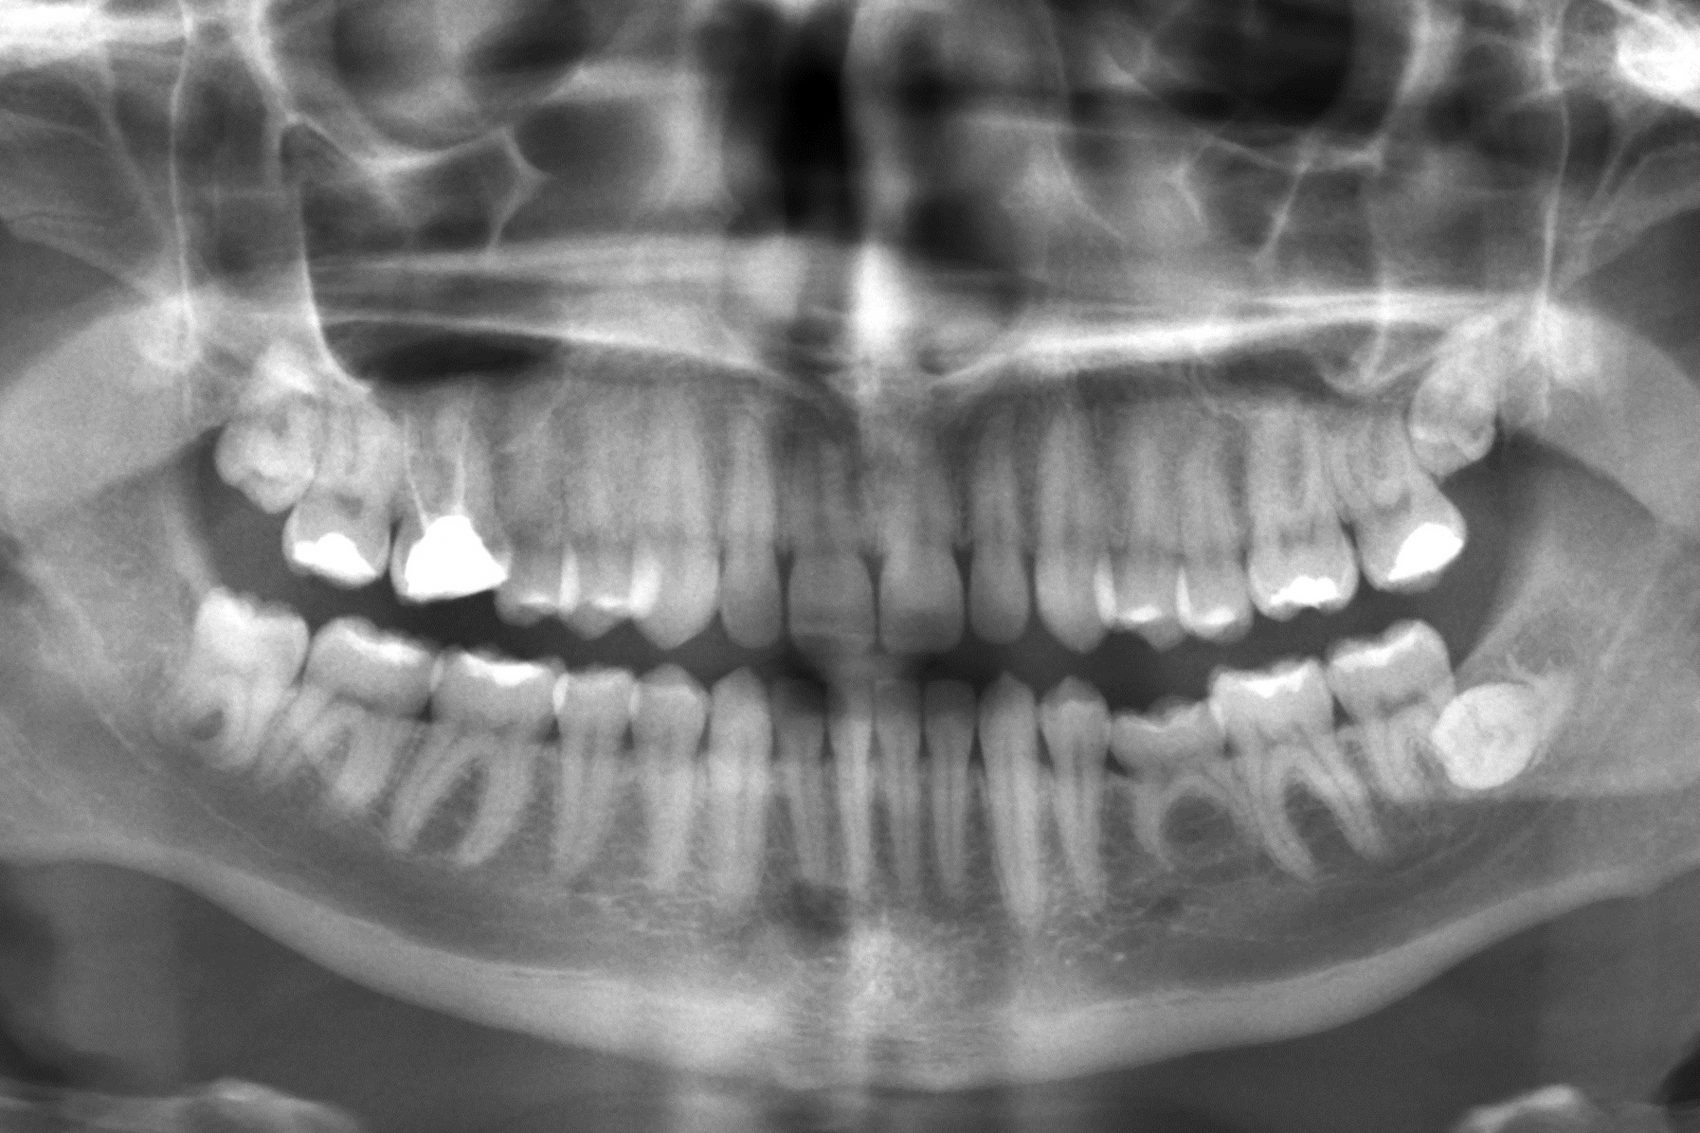 What do your teeth say about us? (Public Domain)